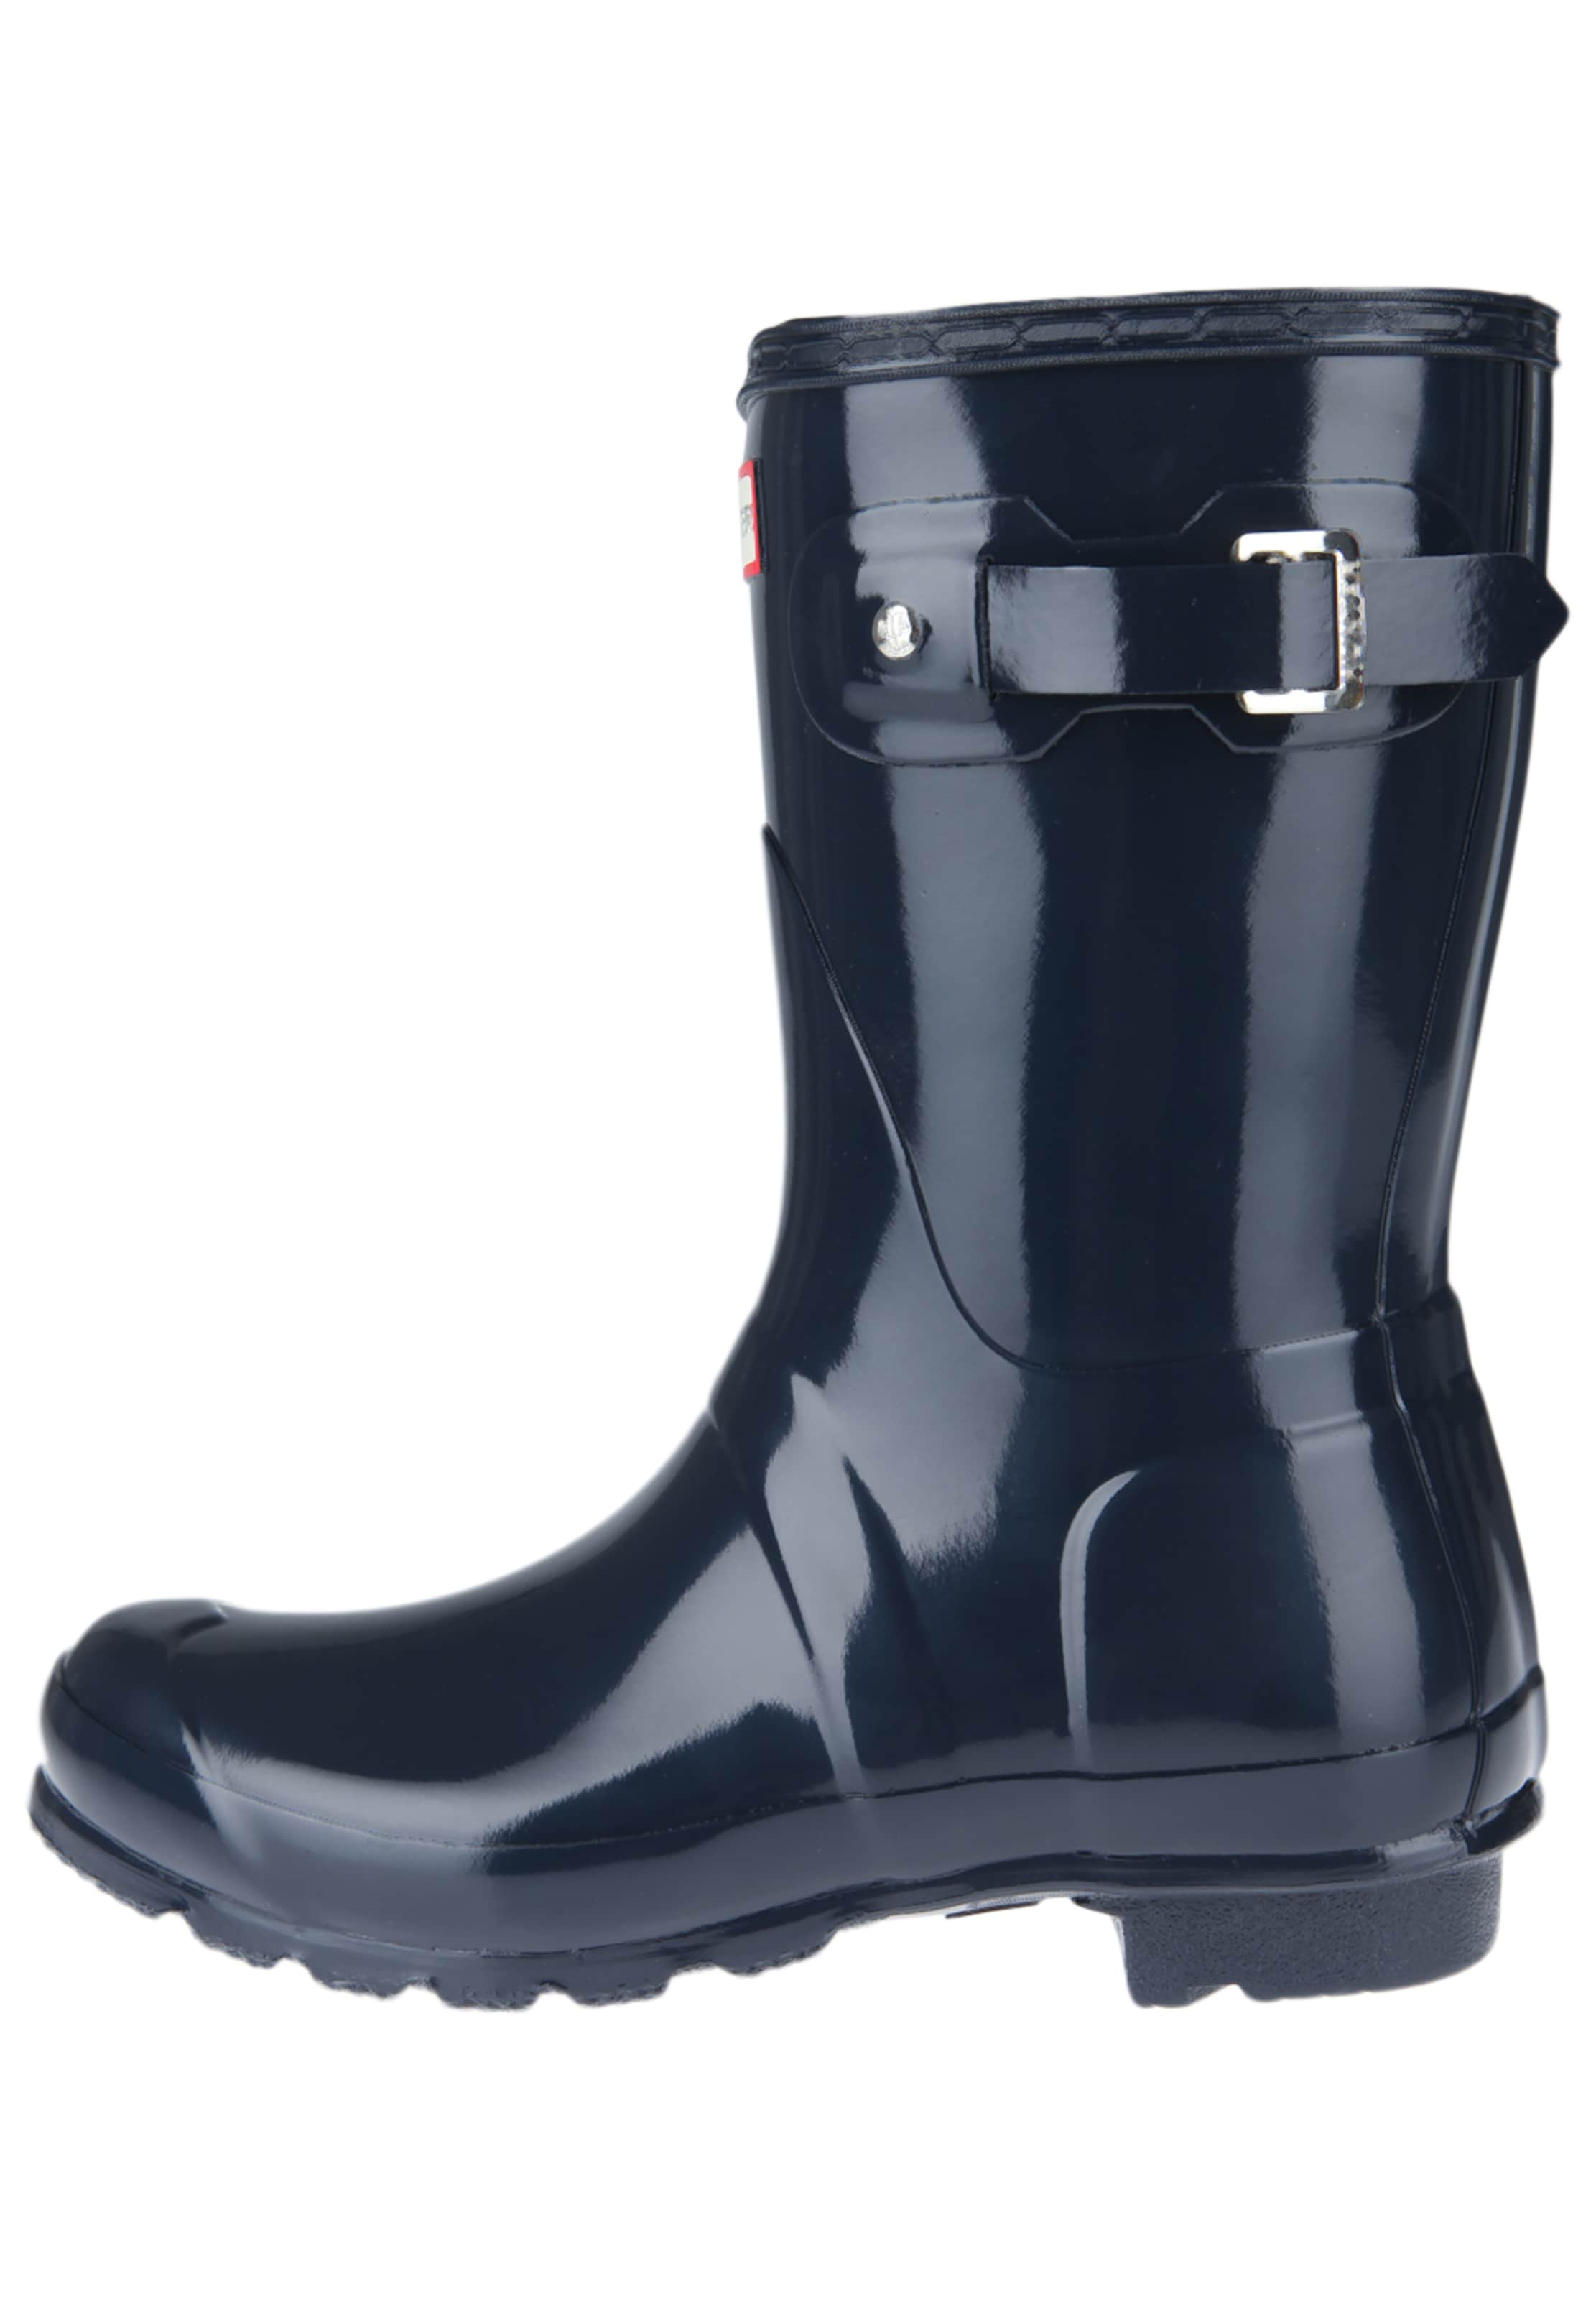 HUNTER Stiefel 'Wmn Org Short Gloss' nachtblau